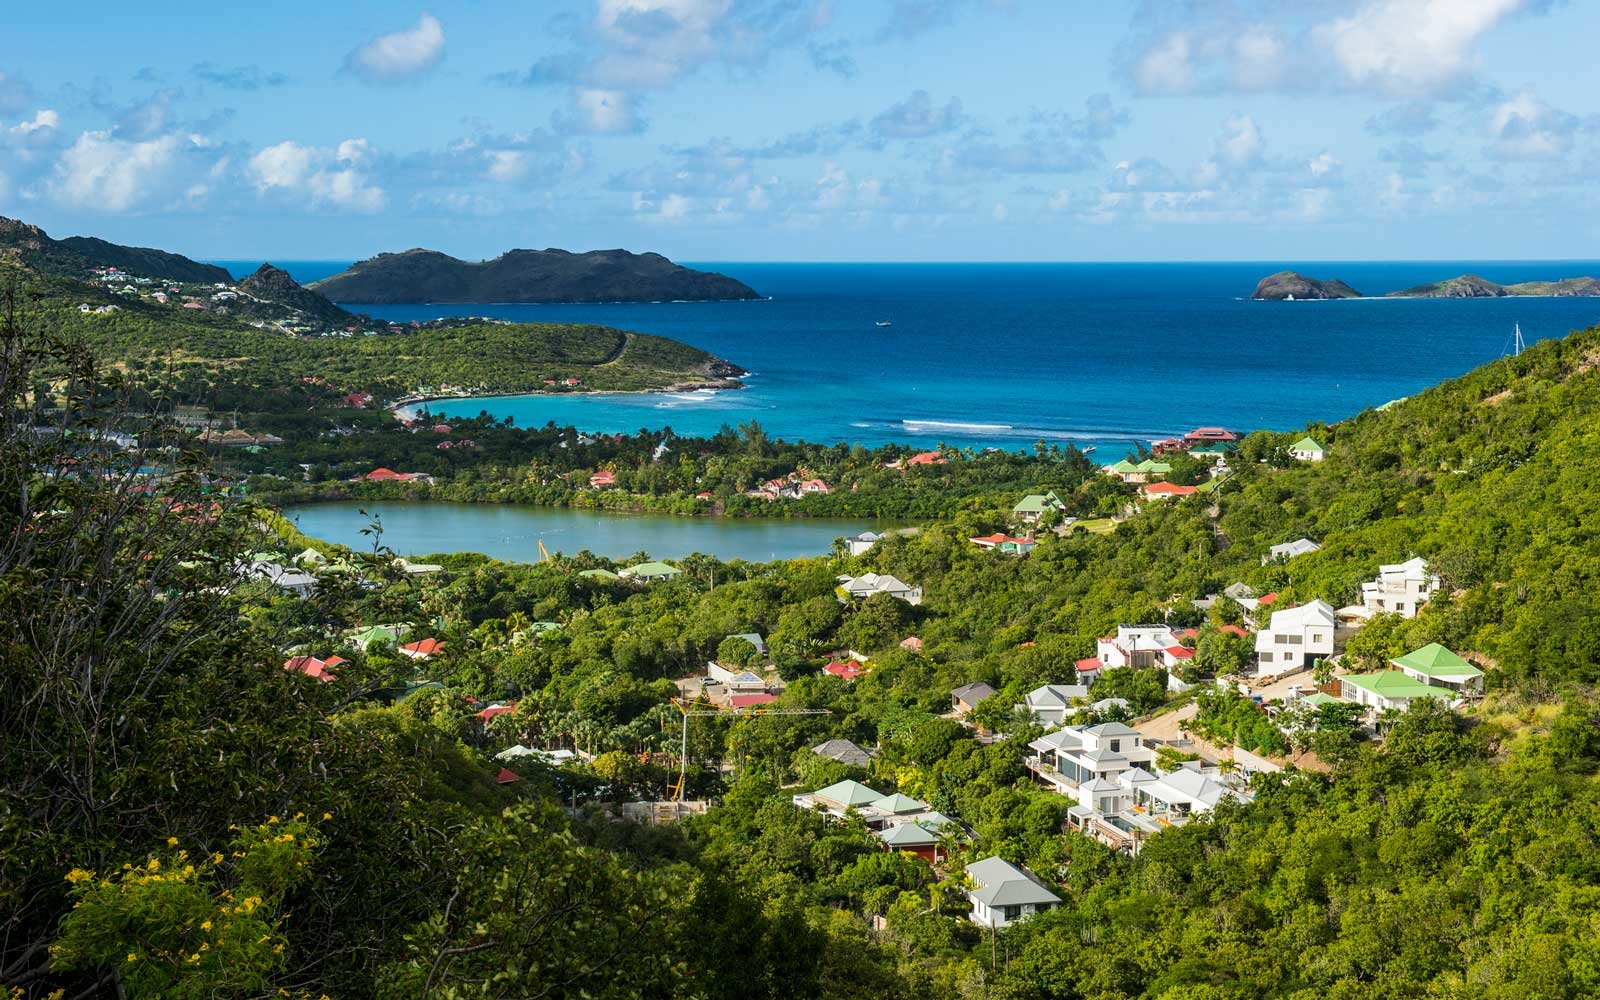 https://letterf.thefthing.com/wp-content/uploads/2018/12/st-barths-west-indies.jpg